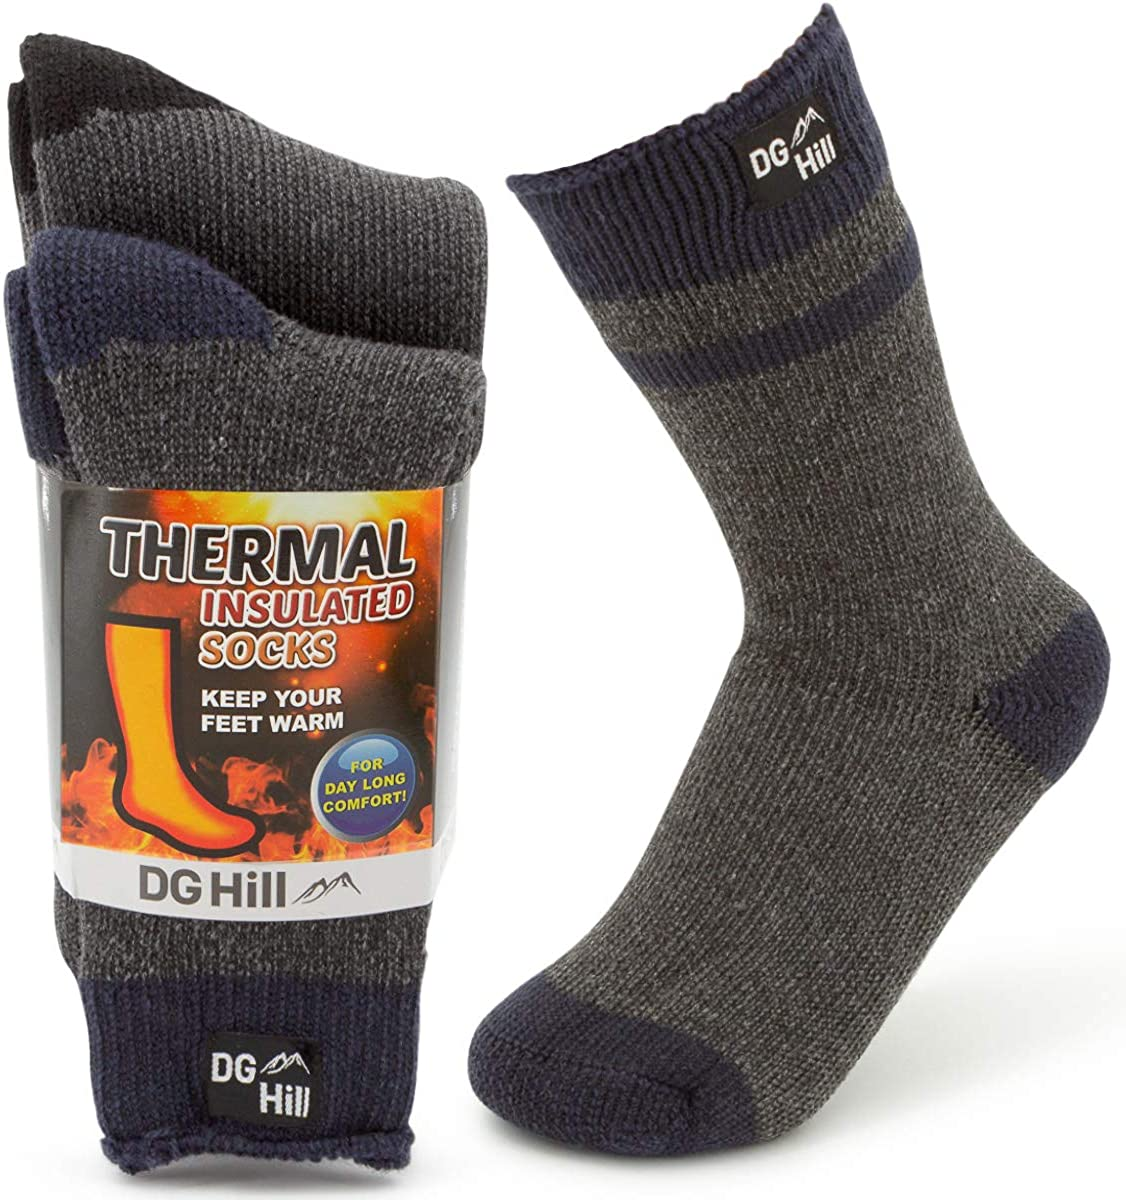 DG Hill (2pk) Kids Thermal Winter Socks Thick Insulated Heated Boot Socks for Cold Weather, Girls and Boys